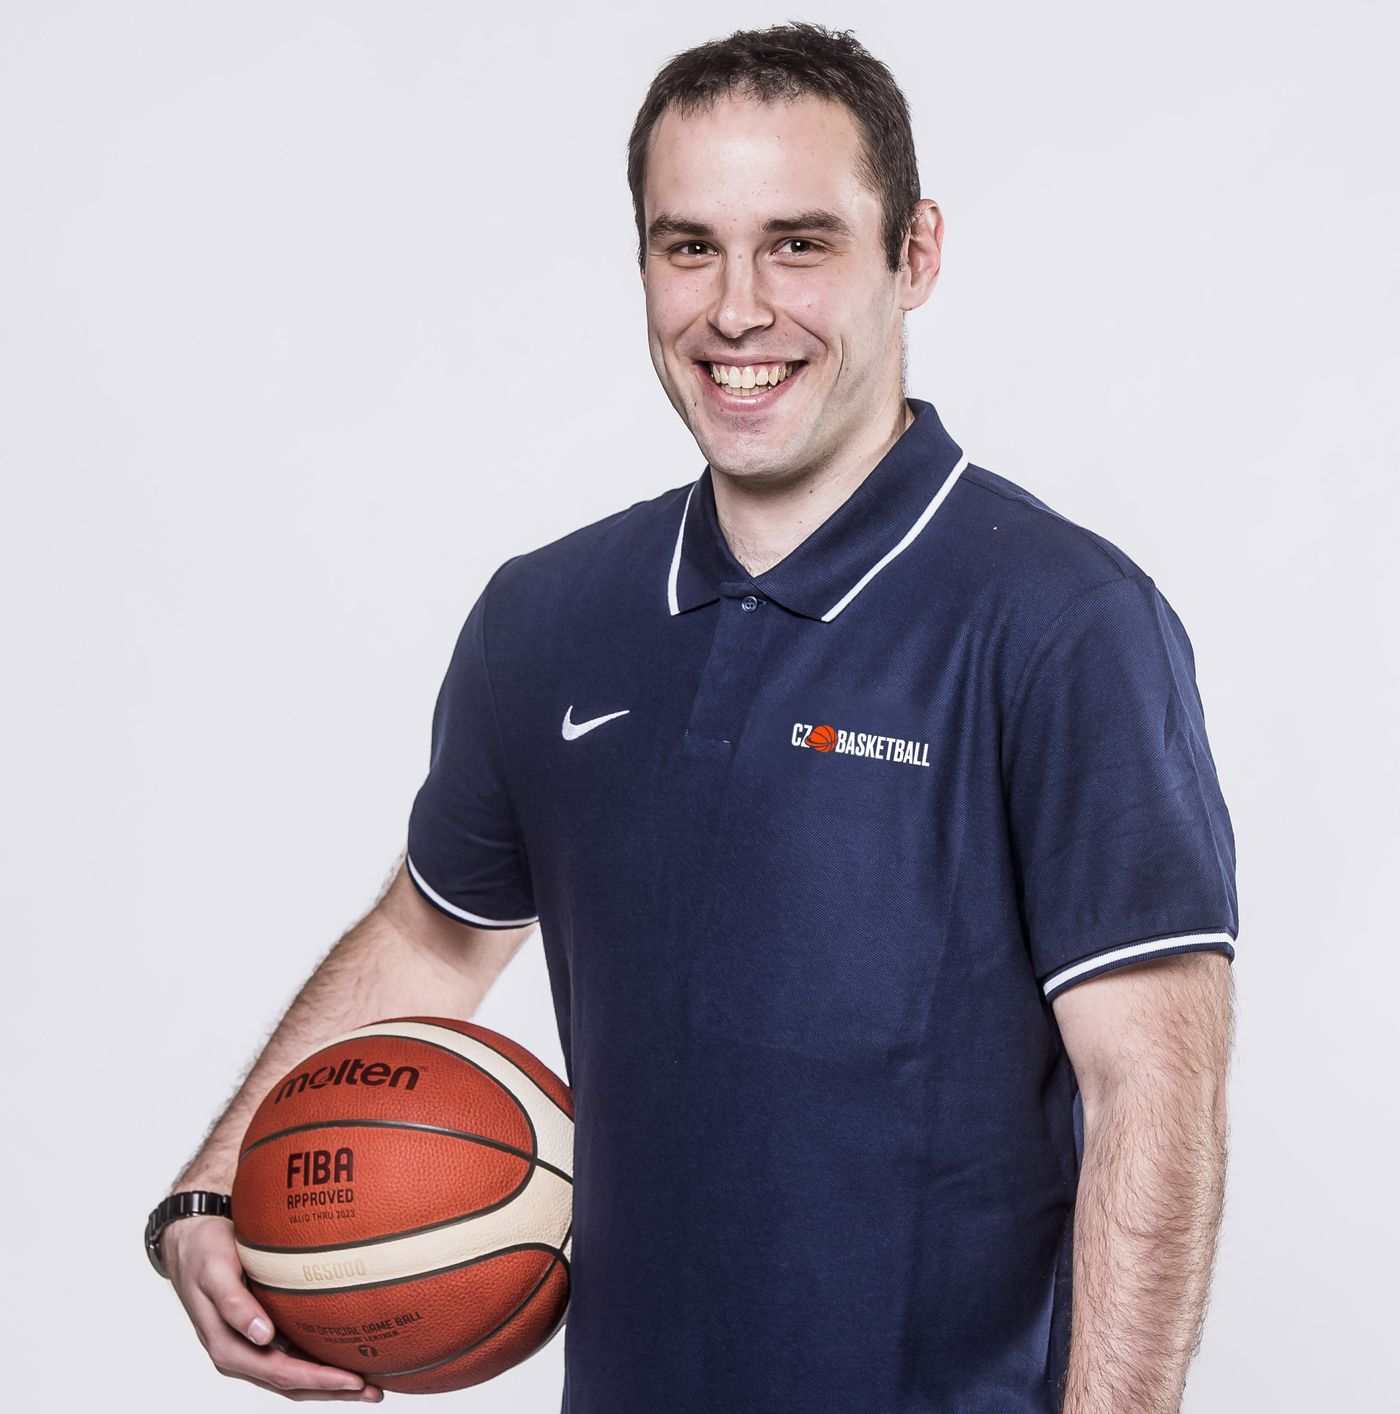 Martin Peterka Interview | Covid-19 basketbal | Sportbiz